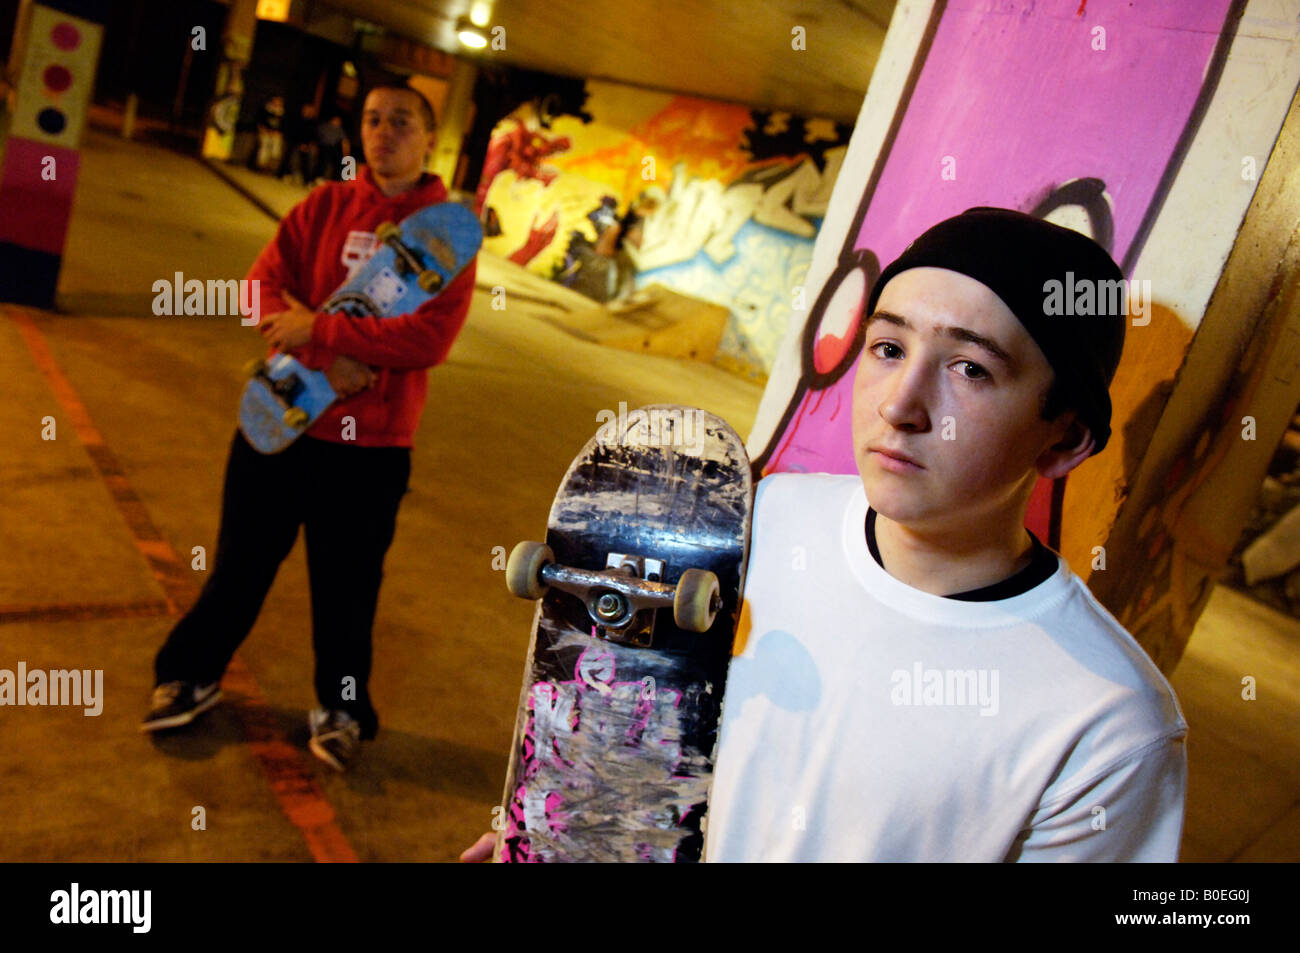 Young urban men youths boys at a skateboarding park during the night - Stock Image